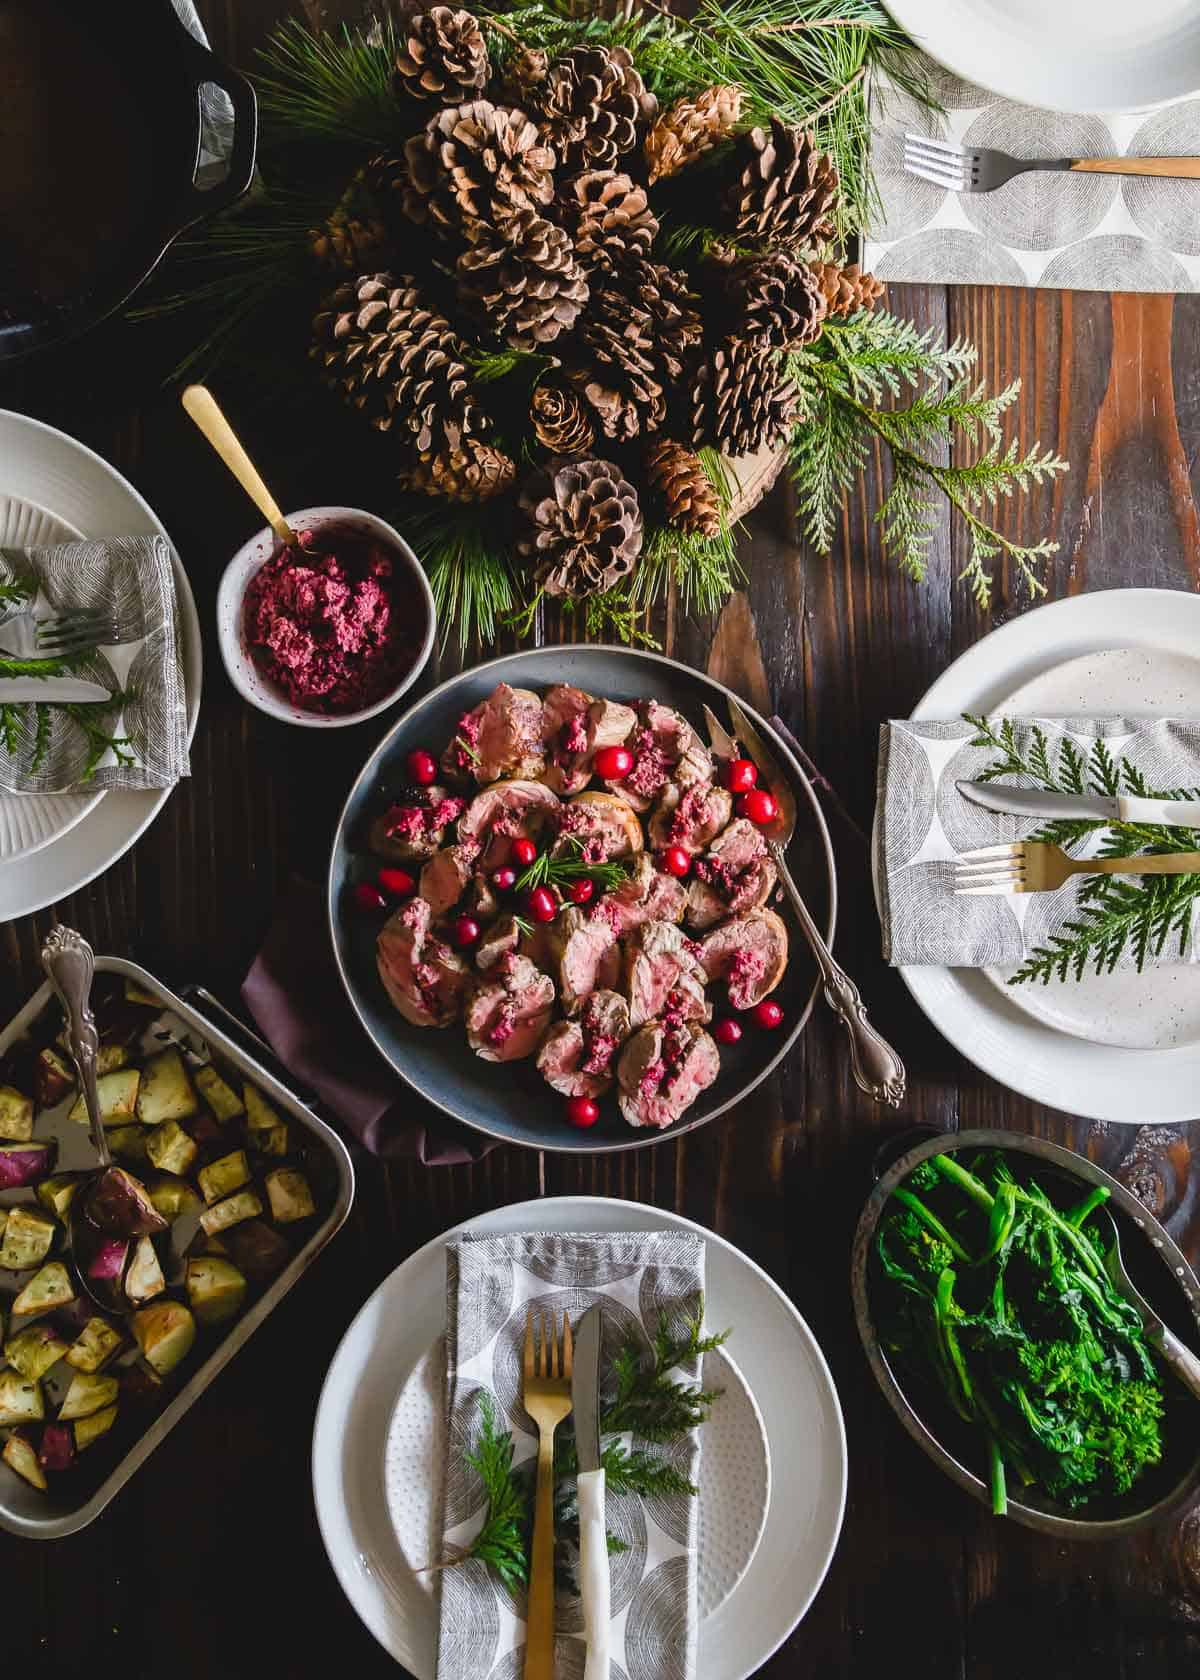 Cranberries make a bright and festive pesto for stuffing lamb in this easy holiday dinner recipe.